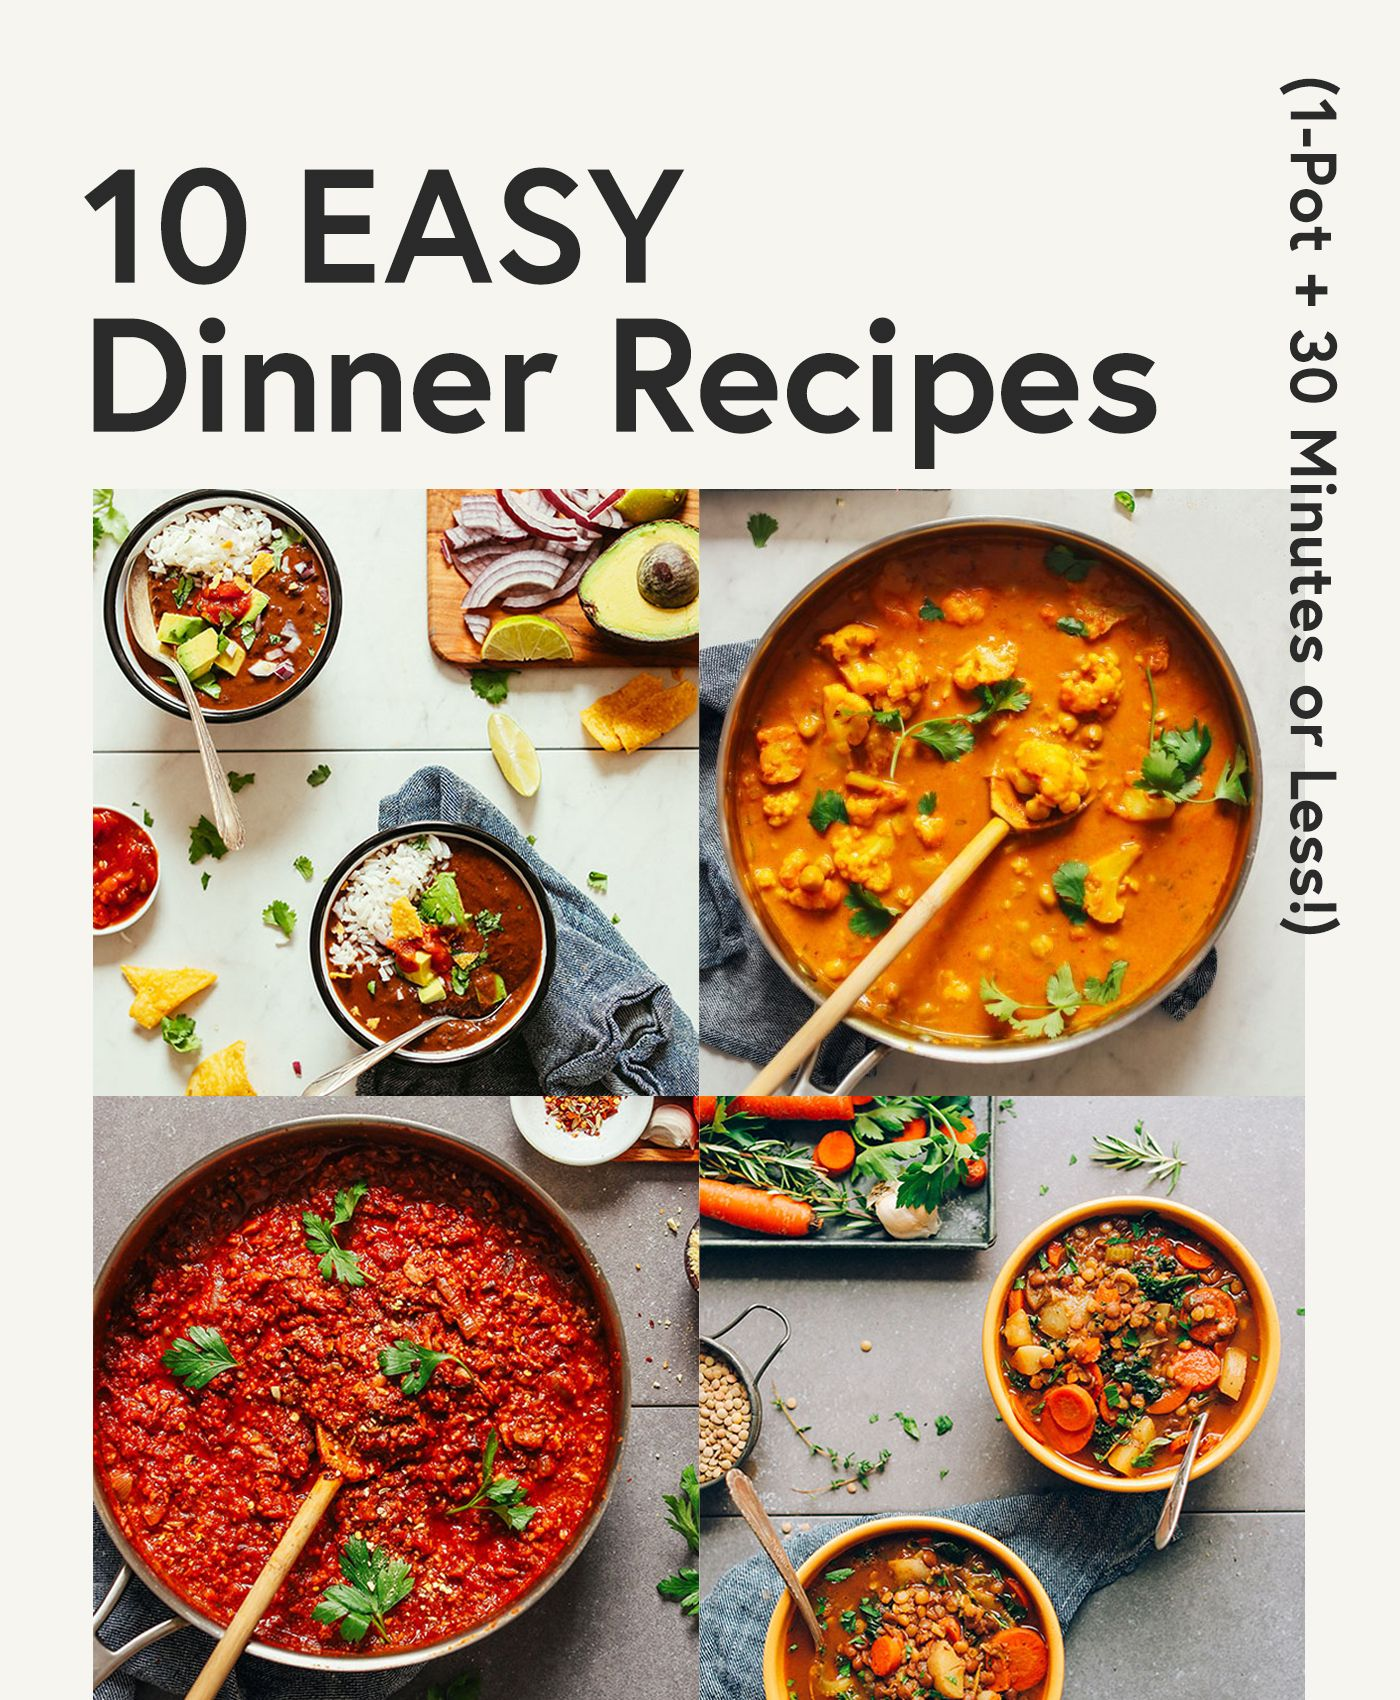 10 Easy Dinner Recipes 30 Minutes Or Less 1 Pot Minimalist Baker In 2020 Recipes Easy Dinner Easy Dinner Recipes